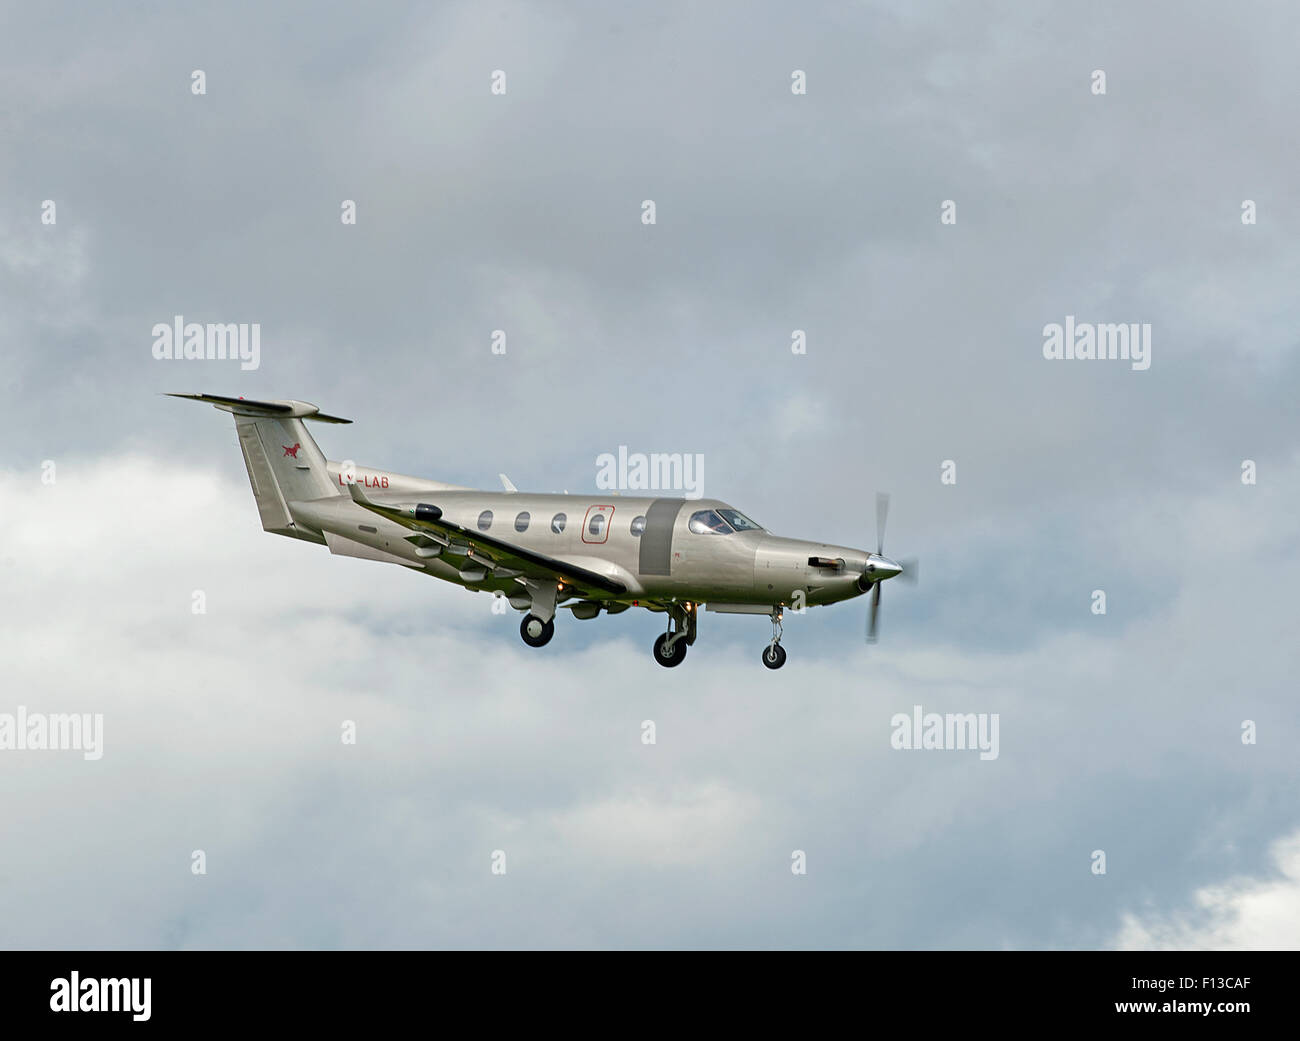 Pilatus PC-12NG (PC-12/47E) Luxembourg registered (LX-LAB) arriving at Inverness Scotland.  SCO 10,047. - Stock Image